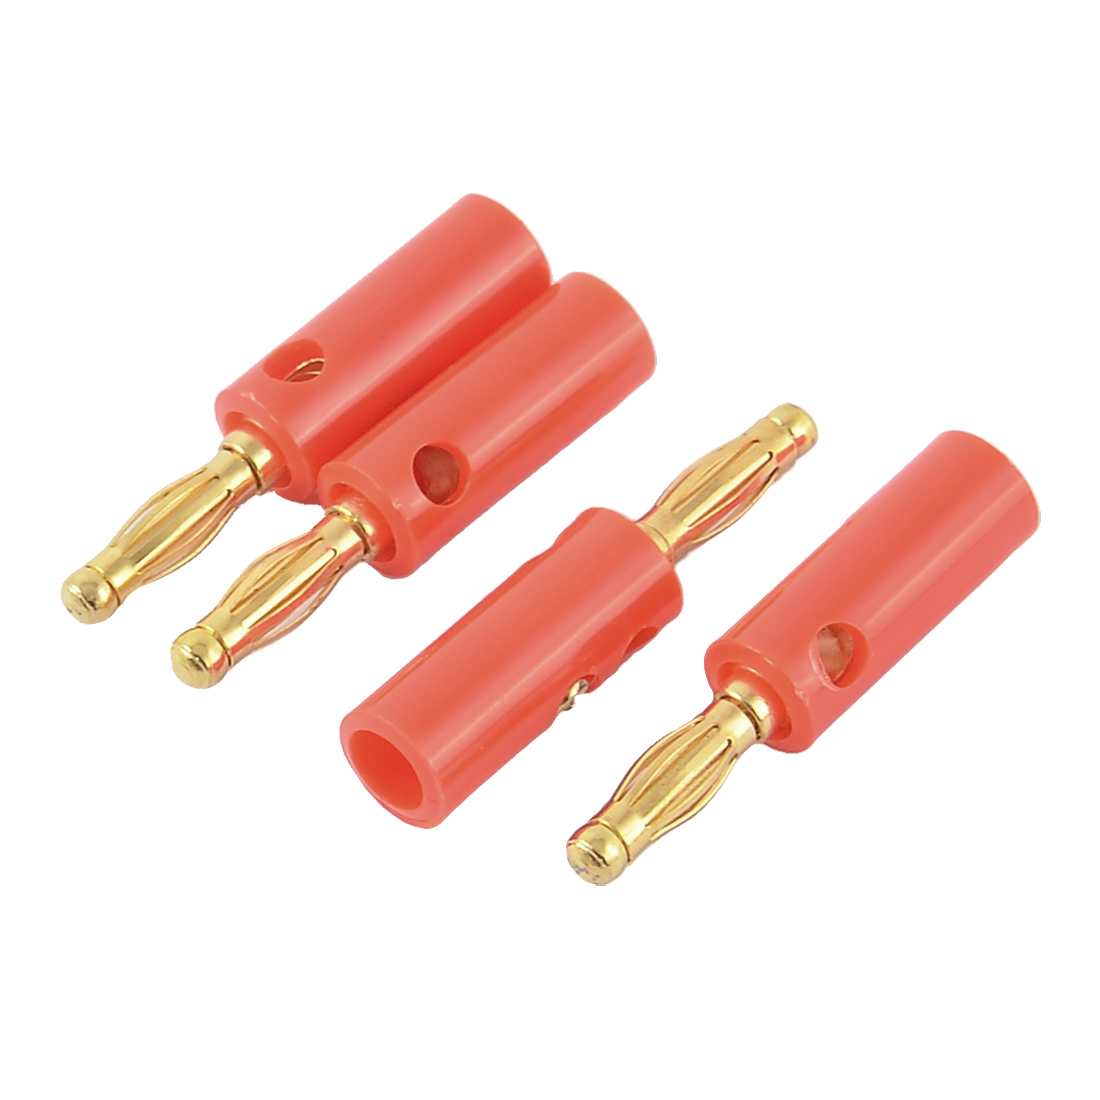 4pcs Red Plastic Cover Audio Speaker Cable Cord Screw Design Banana Connector